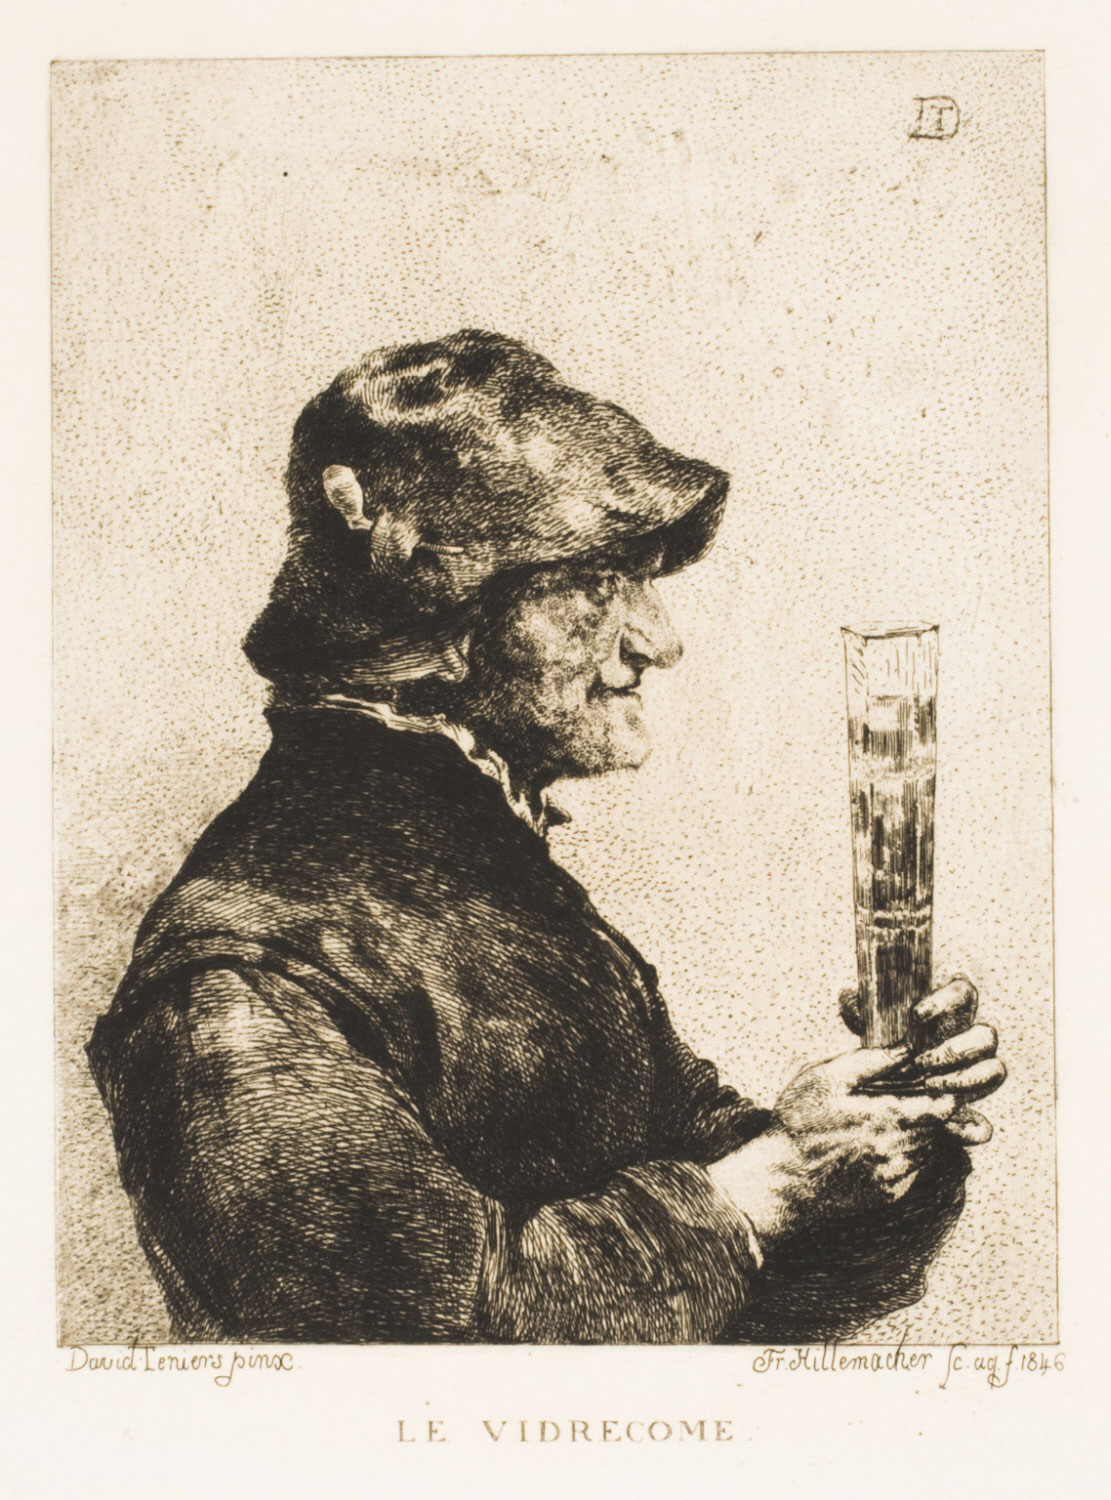 Le Vidrecome (A Peasant with a Tall Beer Glass)